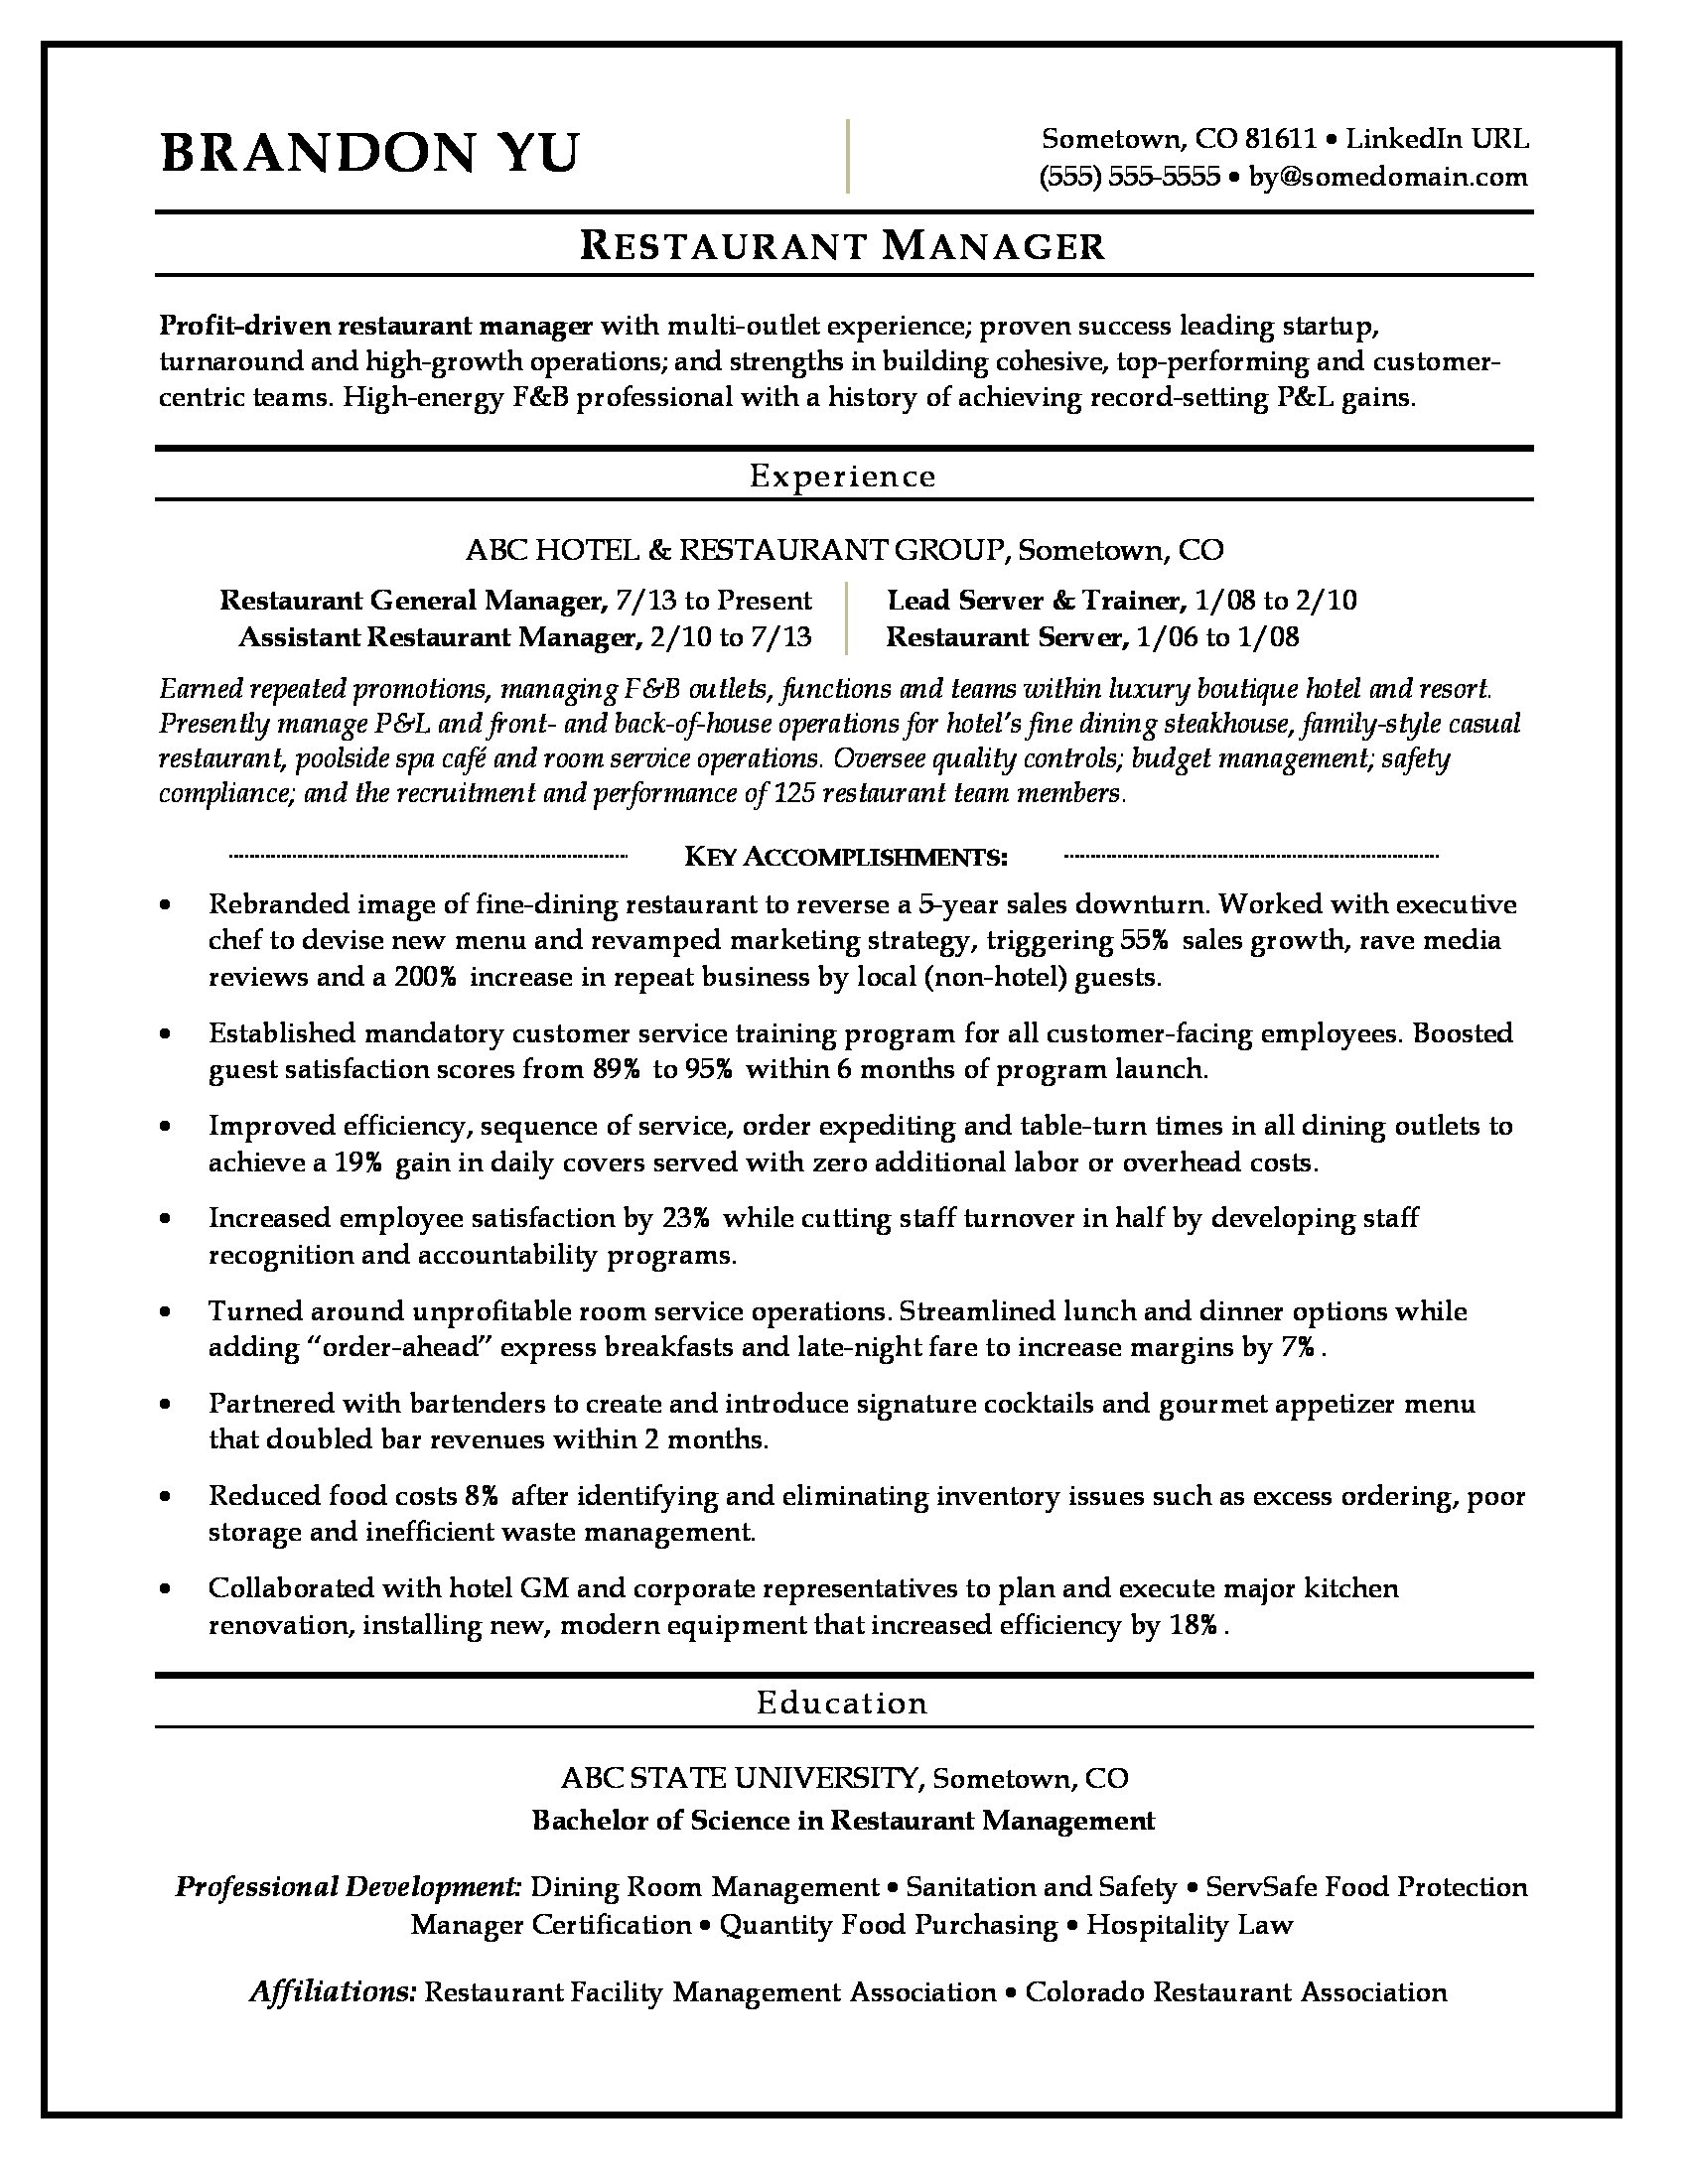 Sample Resume For A Restaurant Manager  Monster Resume Examples